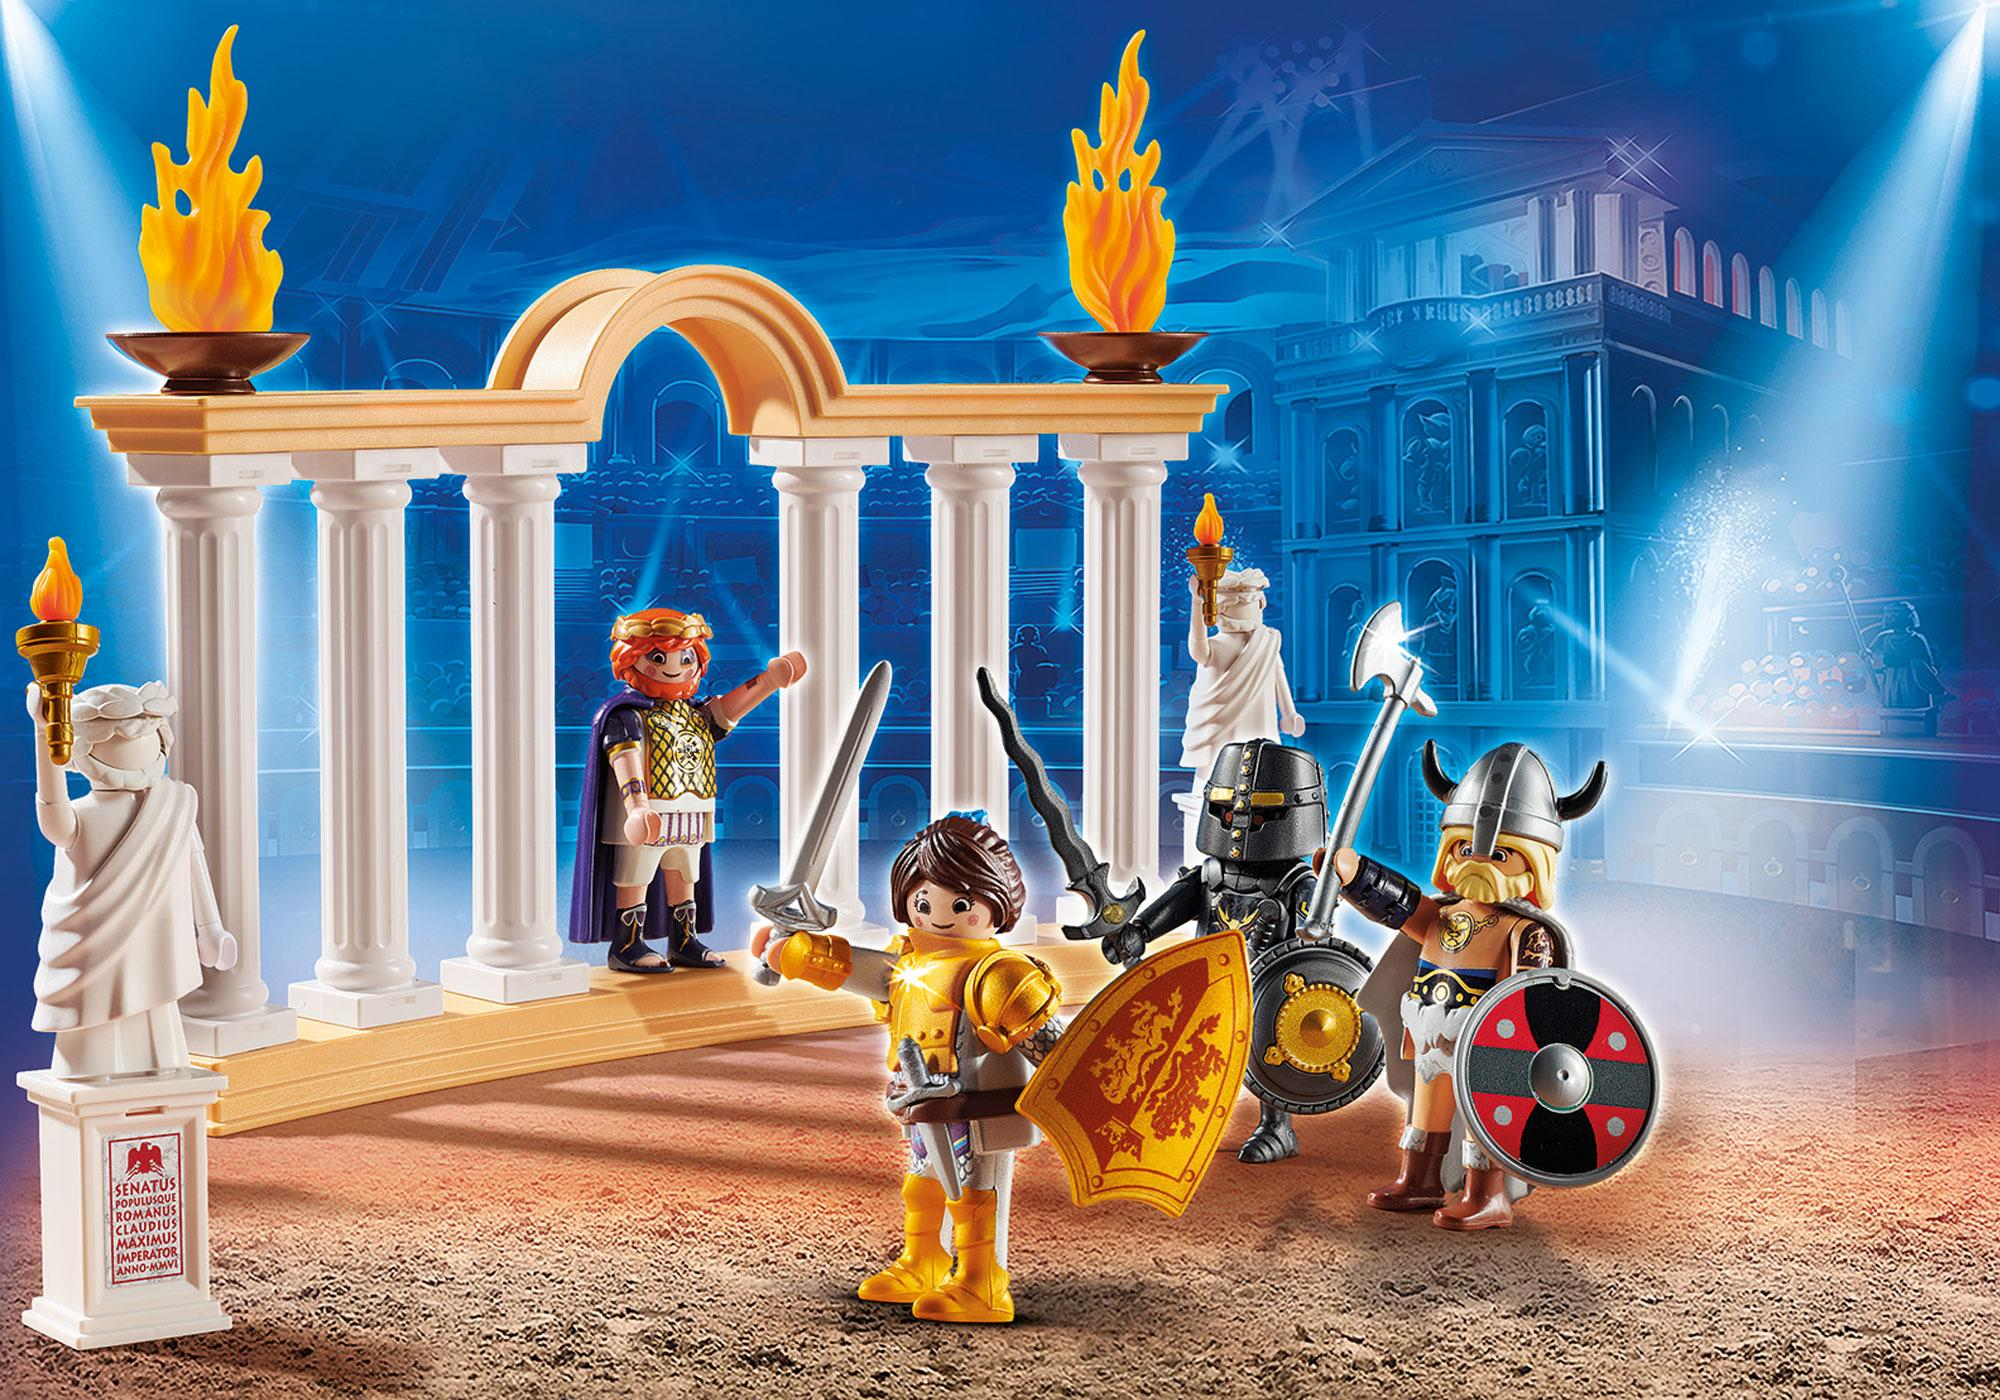 http://media.playmobil.com/i/playmobil/70076_product_detail/PLAYMOBIL: THE MOVIE Keizer Maximus in het Colosseum